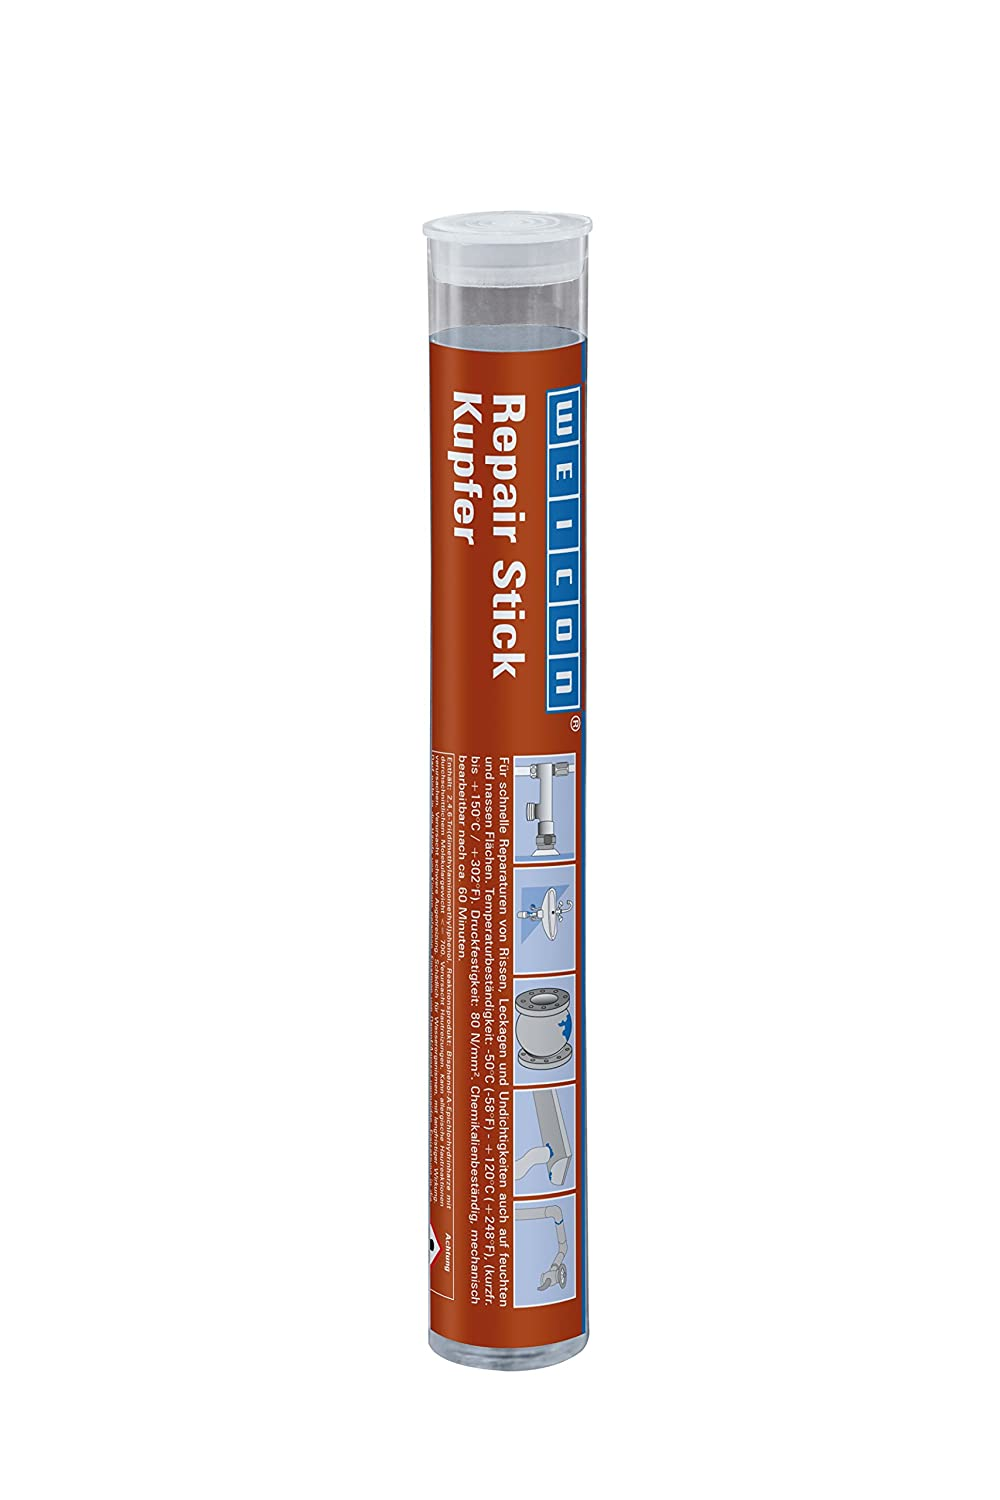 WEICON Repair Stick Copper 57g, 2 Components Adhesive Epoxy Resin Adhesive  Special Adhesive For Repair on Pipes and Lines Heat Resistant 10530057